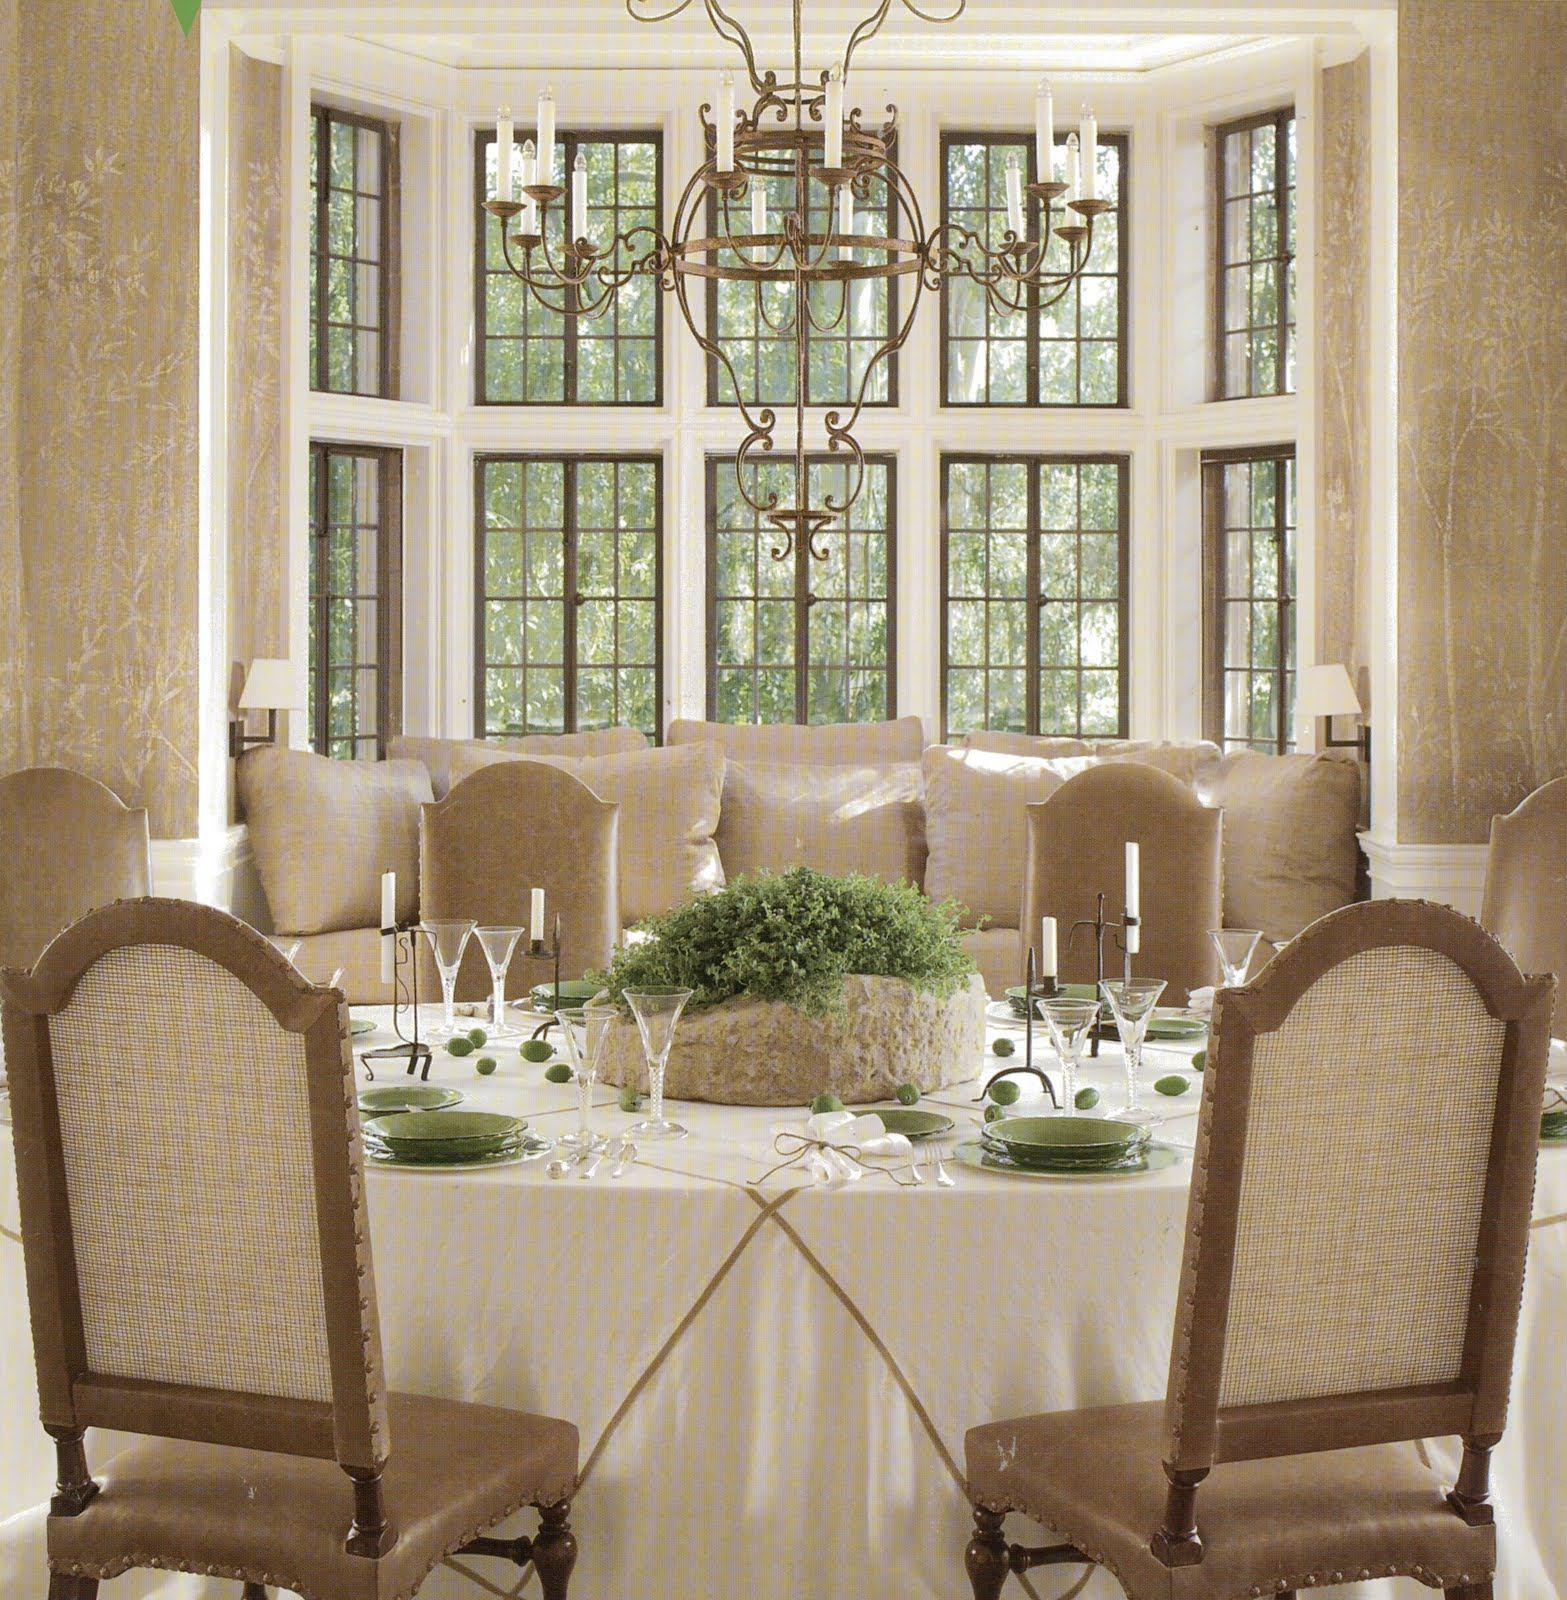 P s i love this ideas for dining room for Dining room window designs